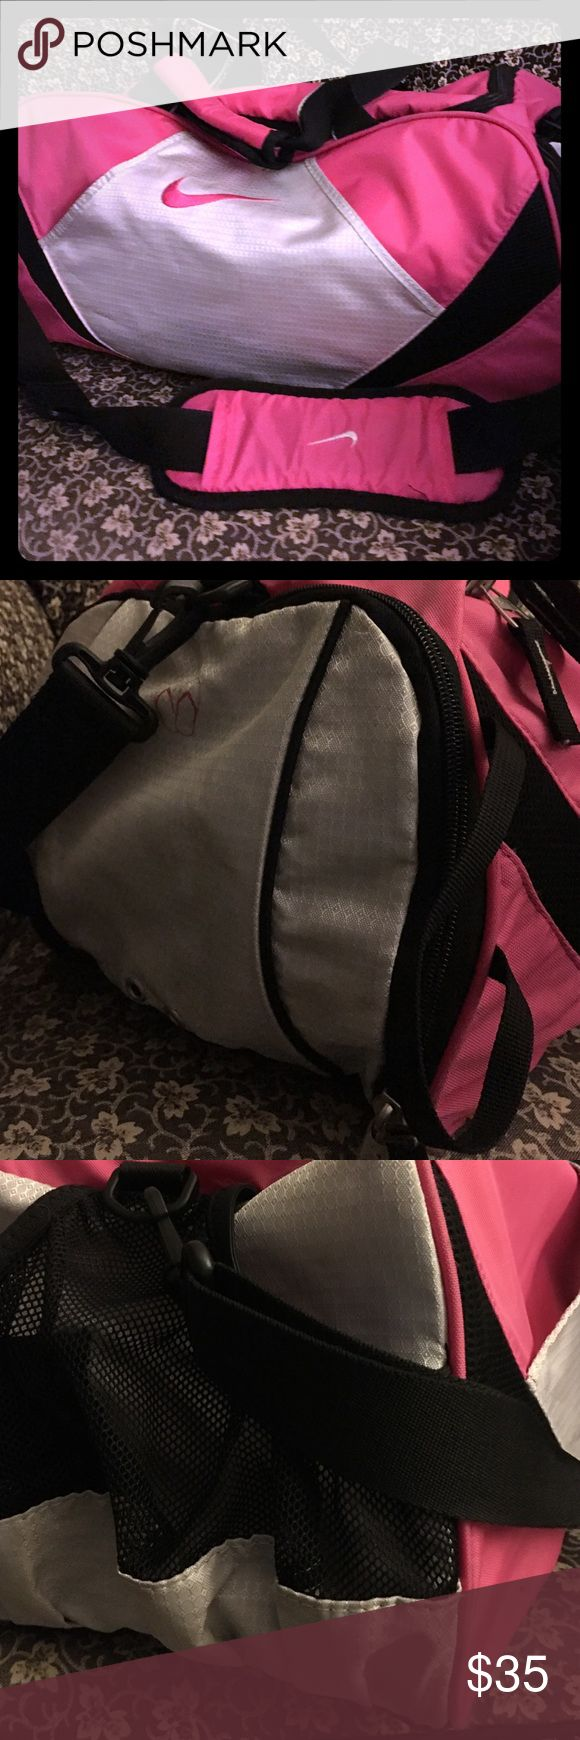 NIKE EUC pink women's gym bag EUC NIKE gym bag only used a few times! In great condition looking for a new owner that will put it to use! 8+ pockets, shoe carrier, removable shoulder strap. Nike Bags Shoulder Bags